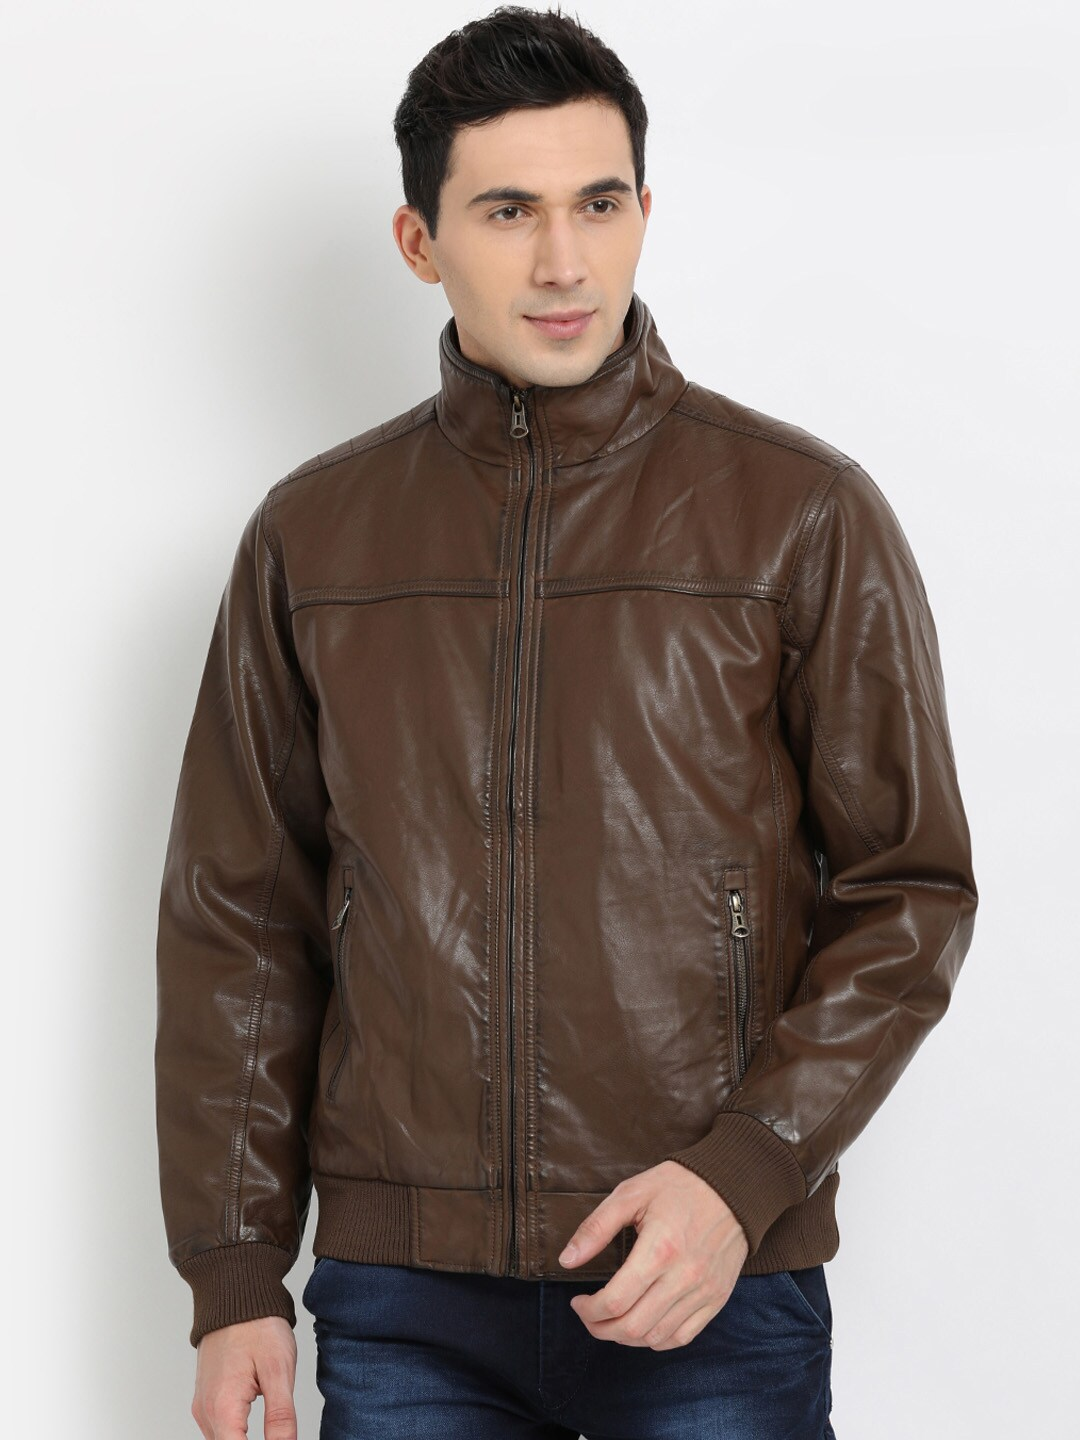 Leather Jackets Buy Jacket Online In India Myntra Jaket Levis Pria Jeans Levi S Basic